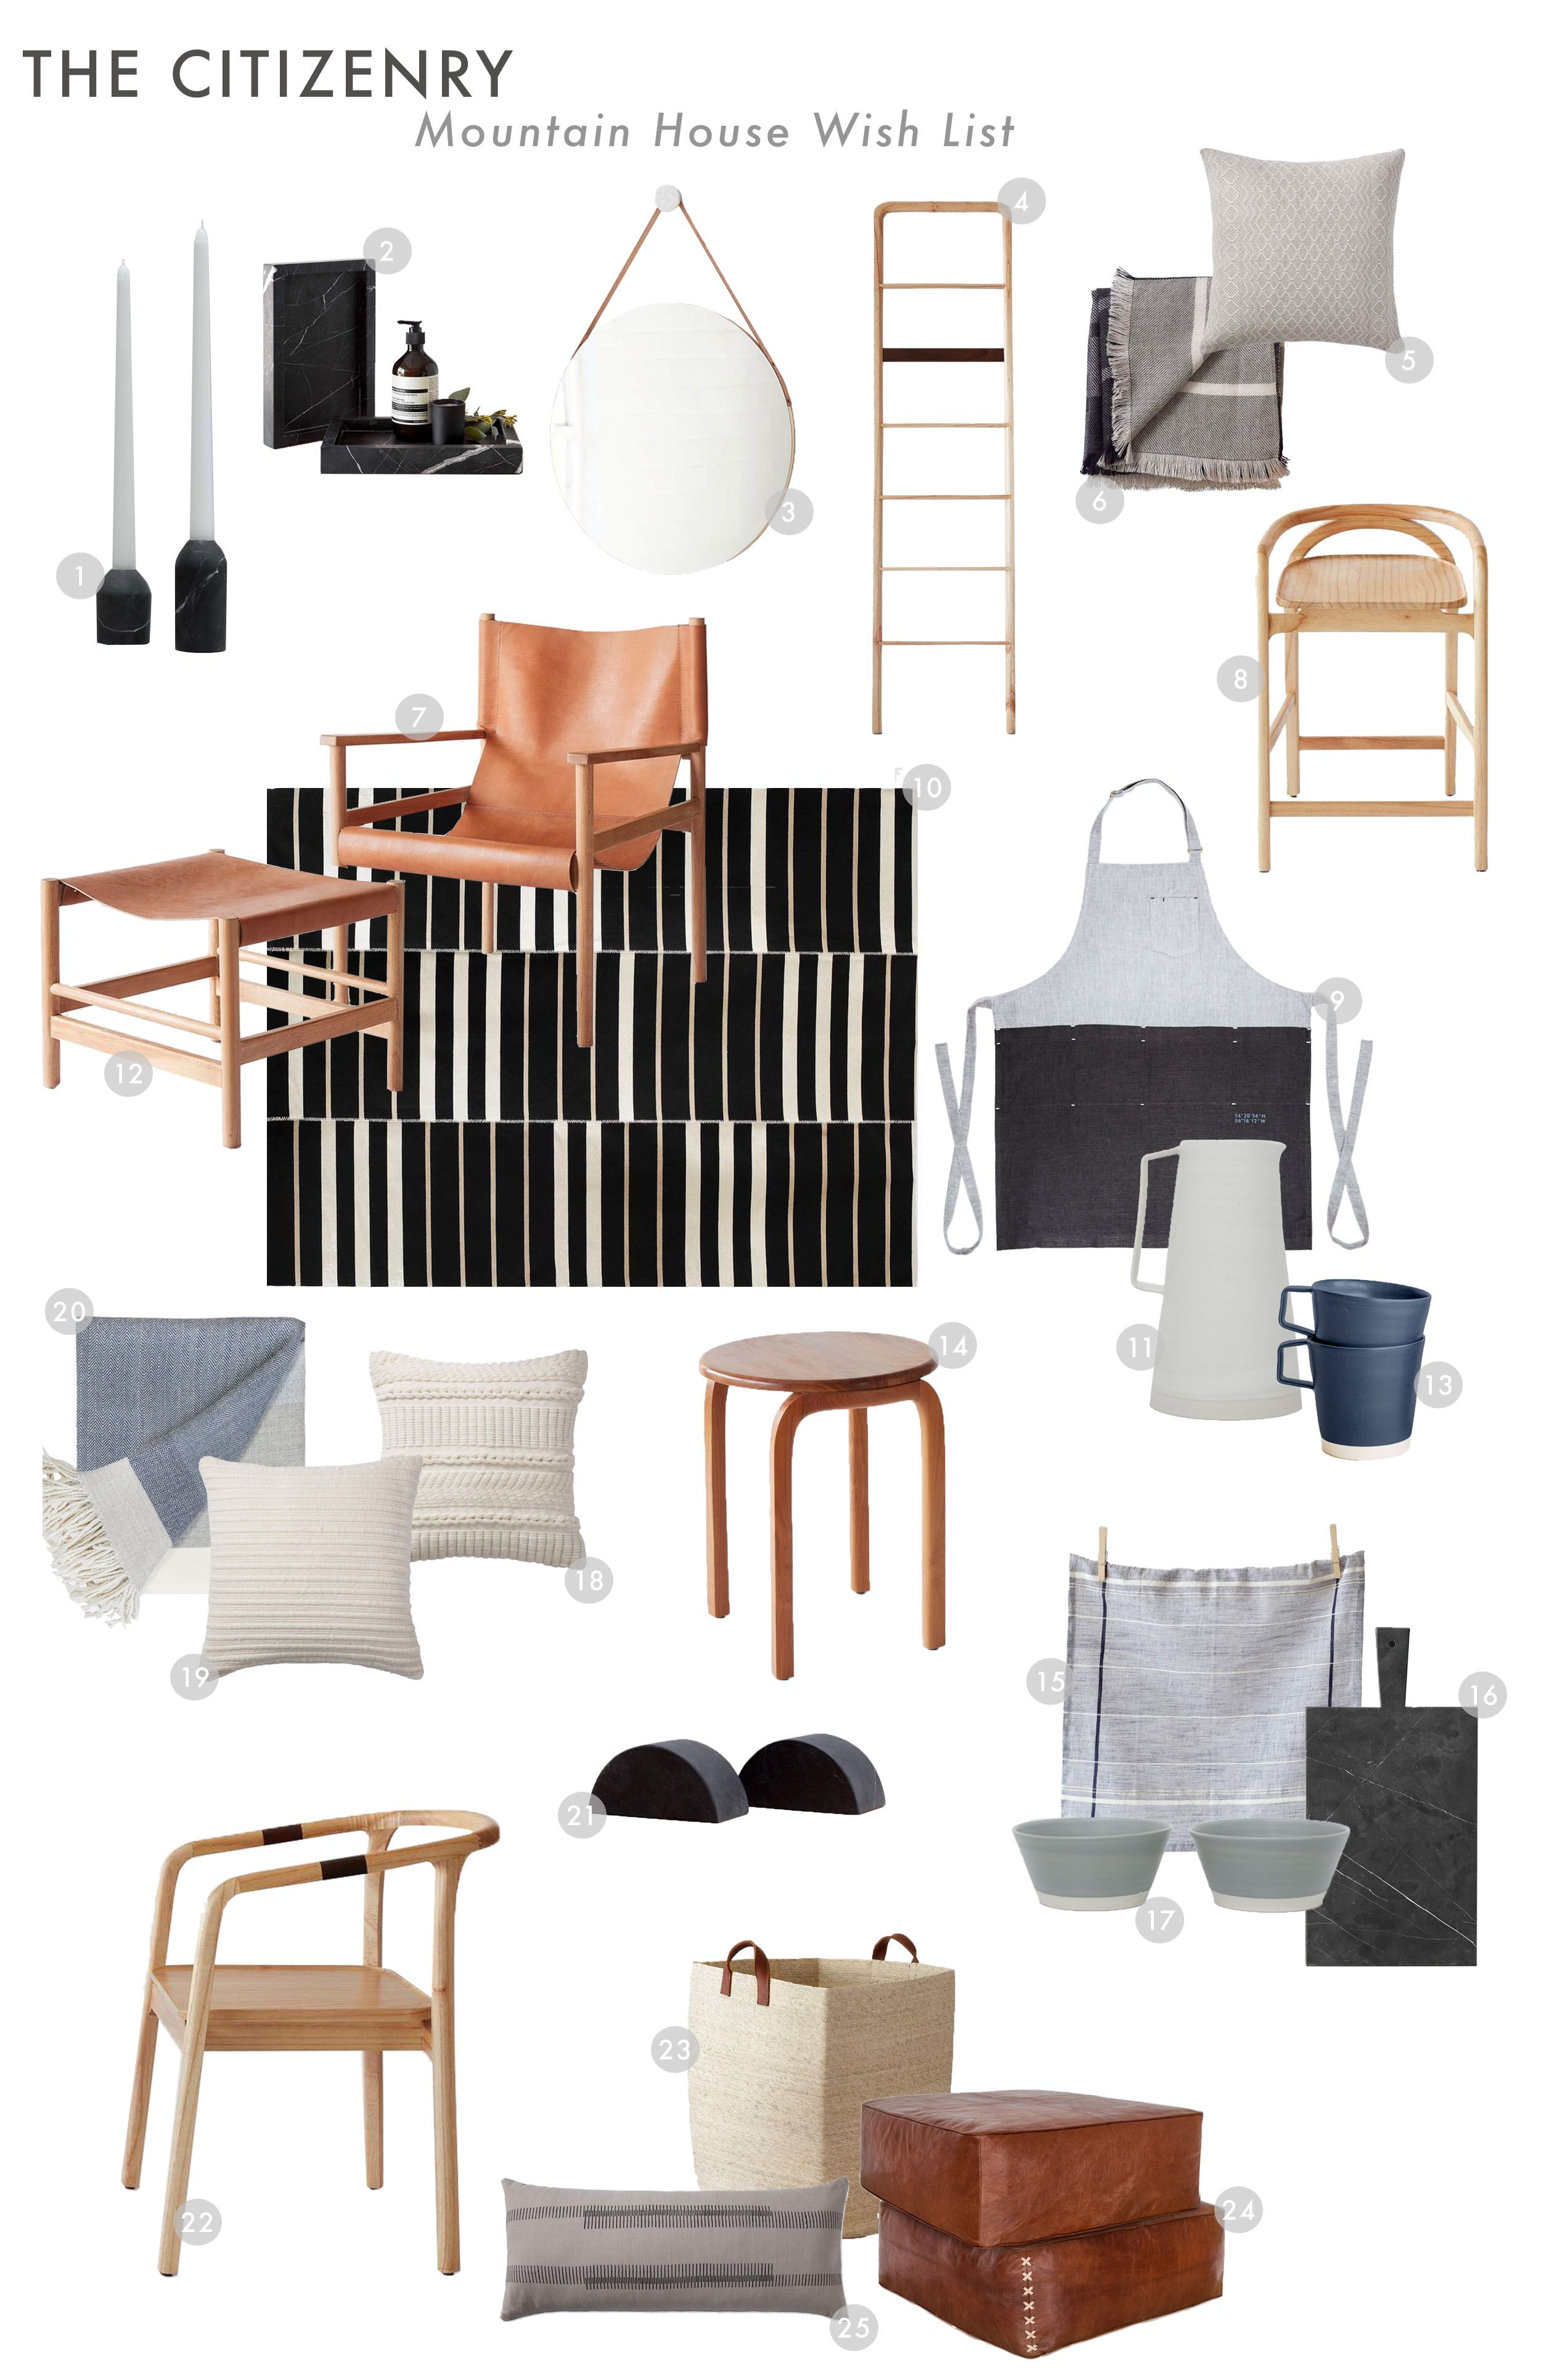 Making My Mountain House Decor Wishlist With The Citizenry